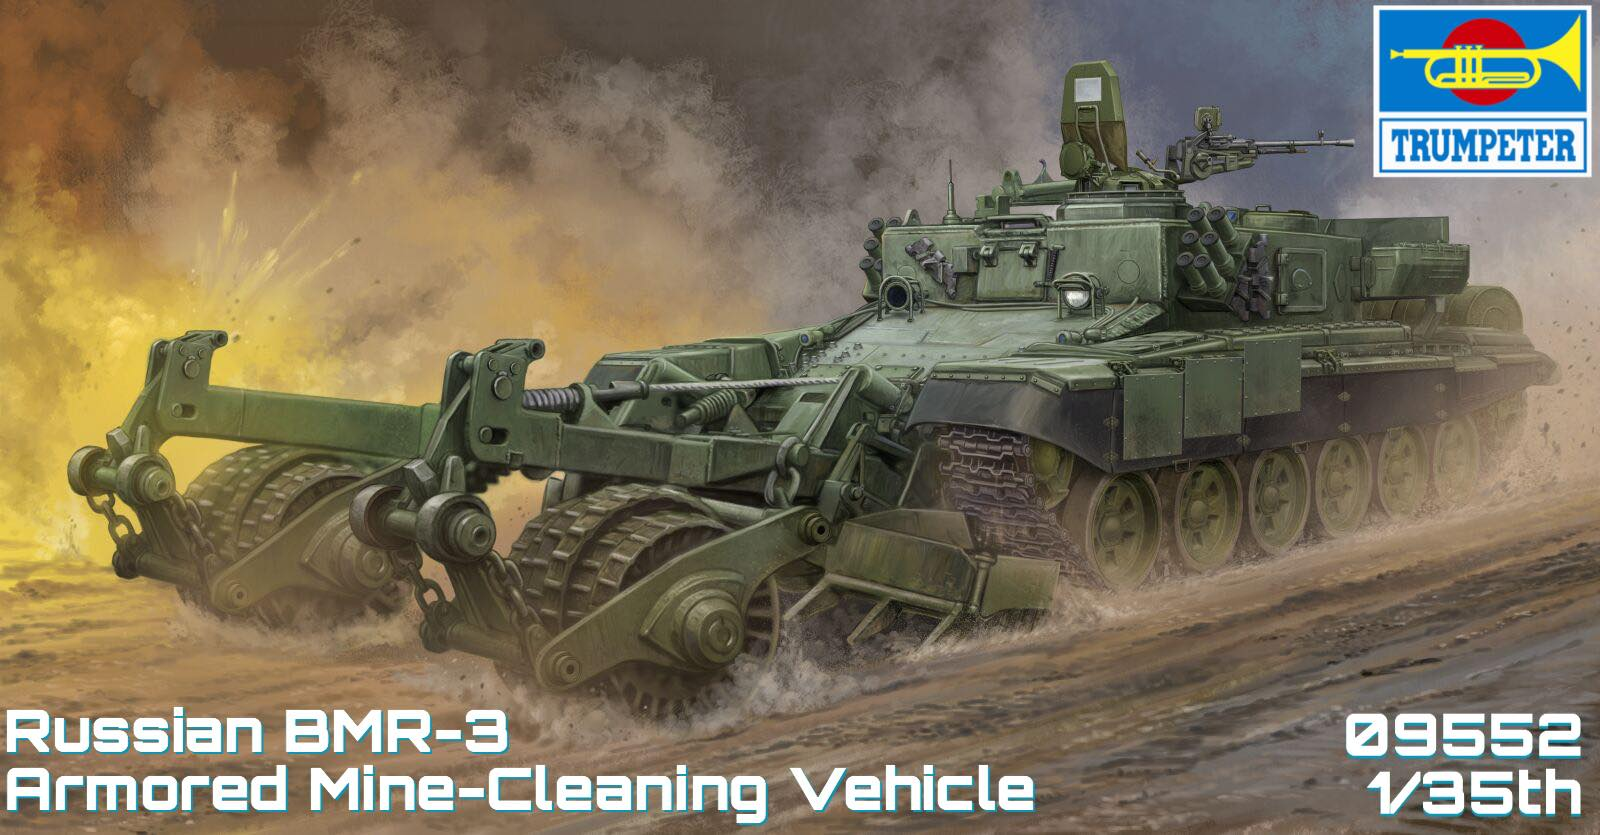 TRUMPETER KIT # 09552 1-35 Russian BMR-3 Armored Mine-Cleaning Vehicle.jpg